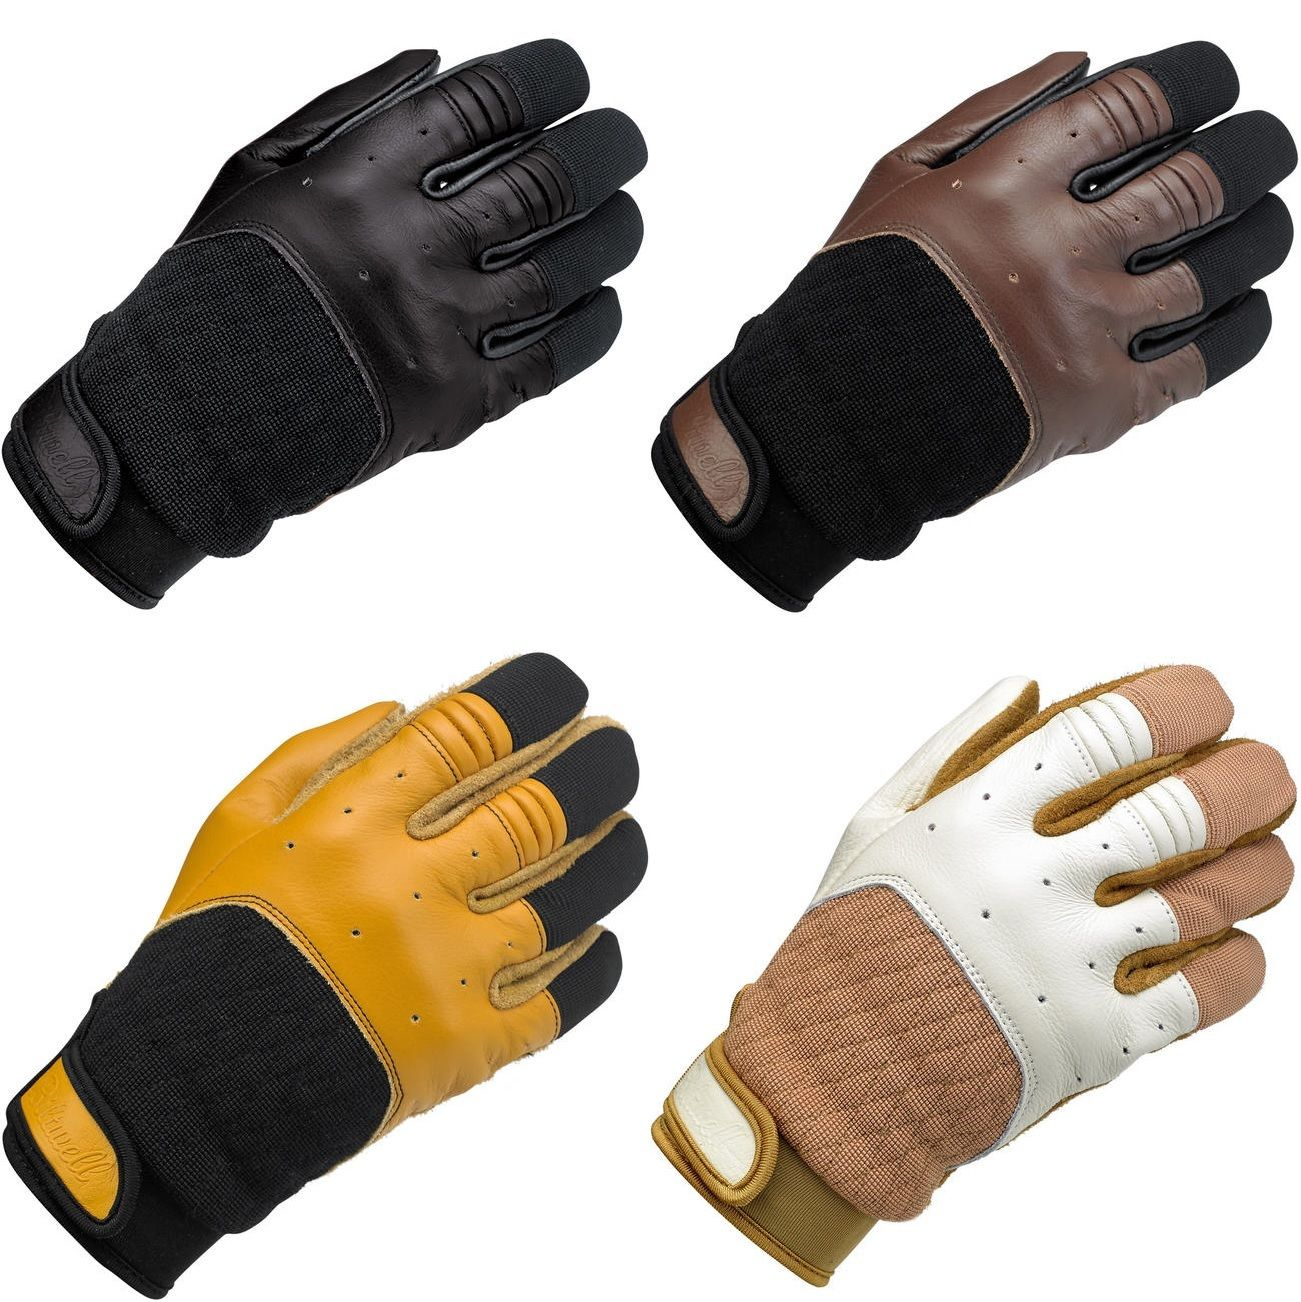 Buy leather motorcycle gloves - Biltwell Bantam Leather Vintage Motorcycle Gloves All Colors All Sizes